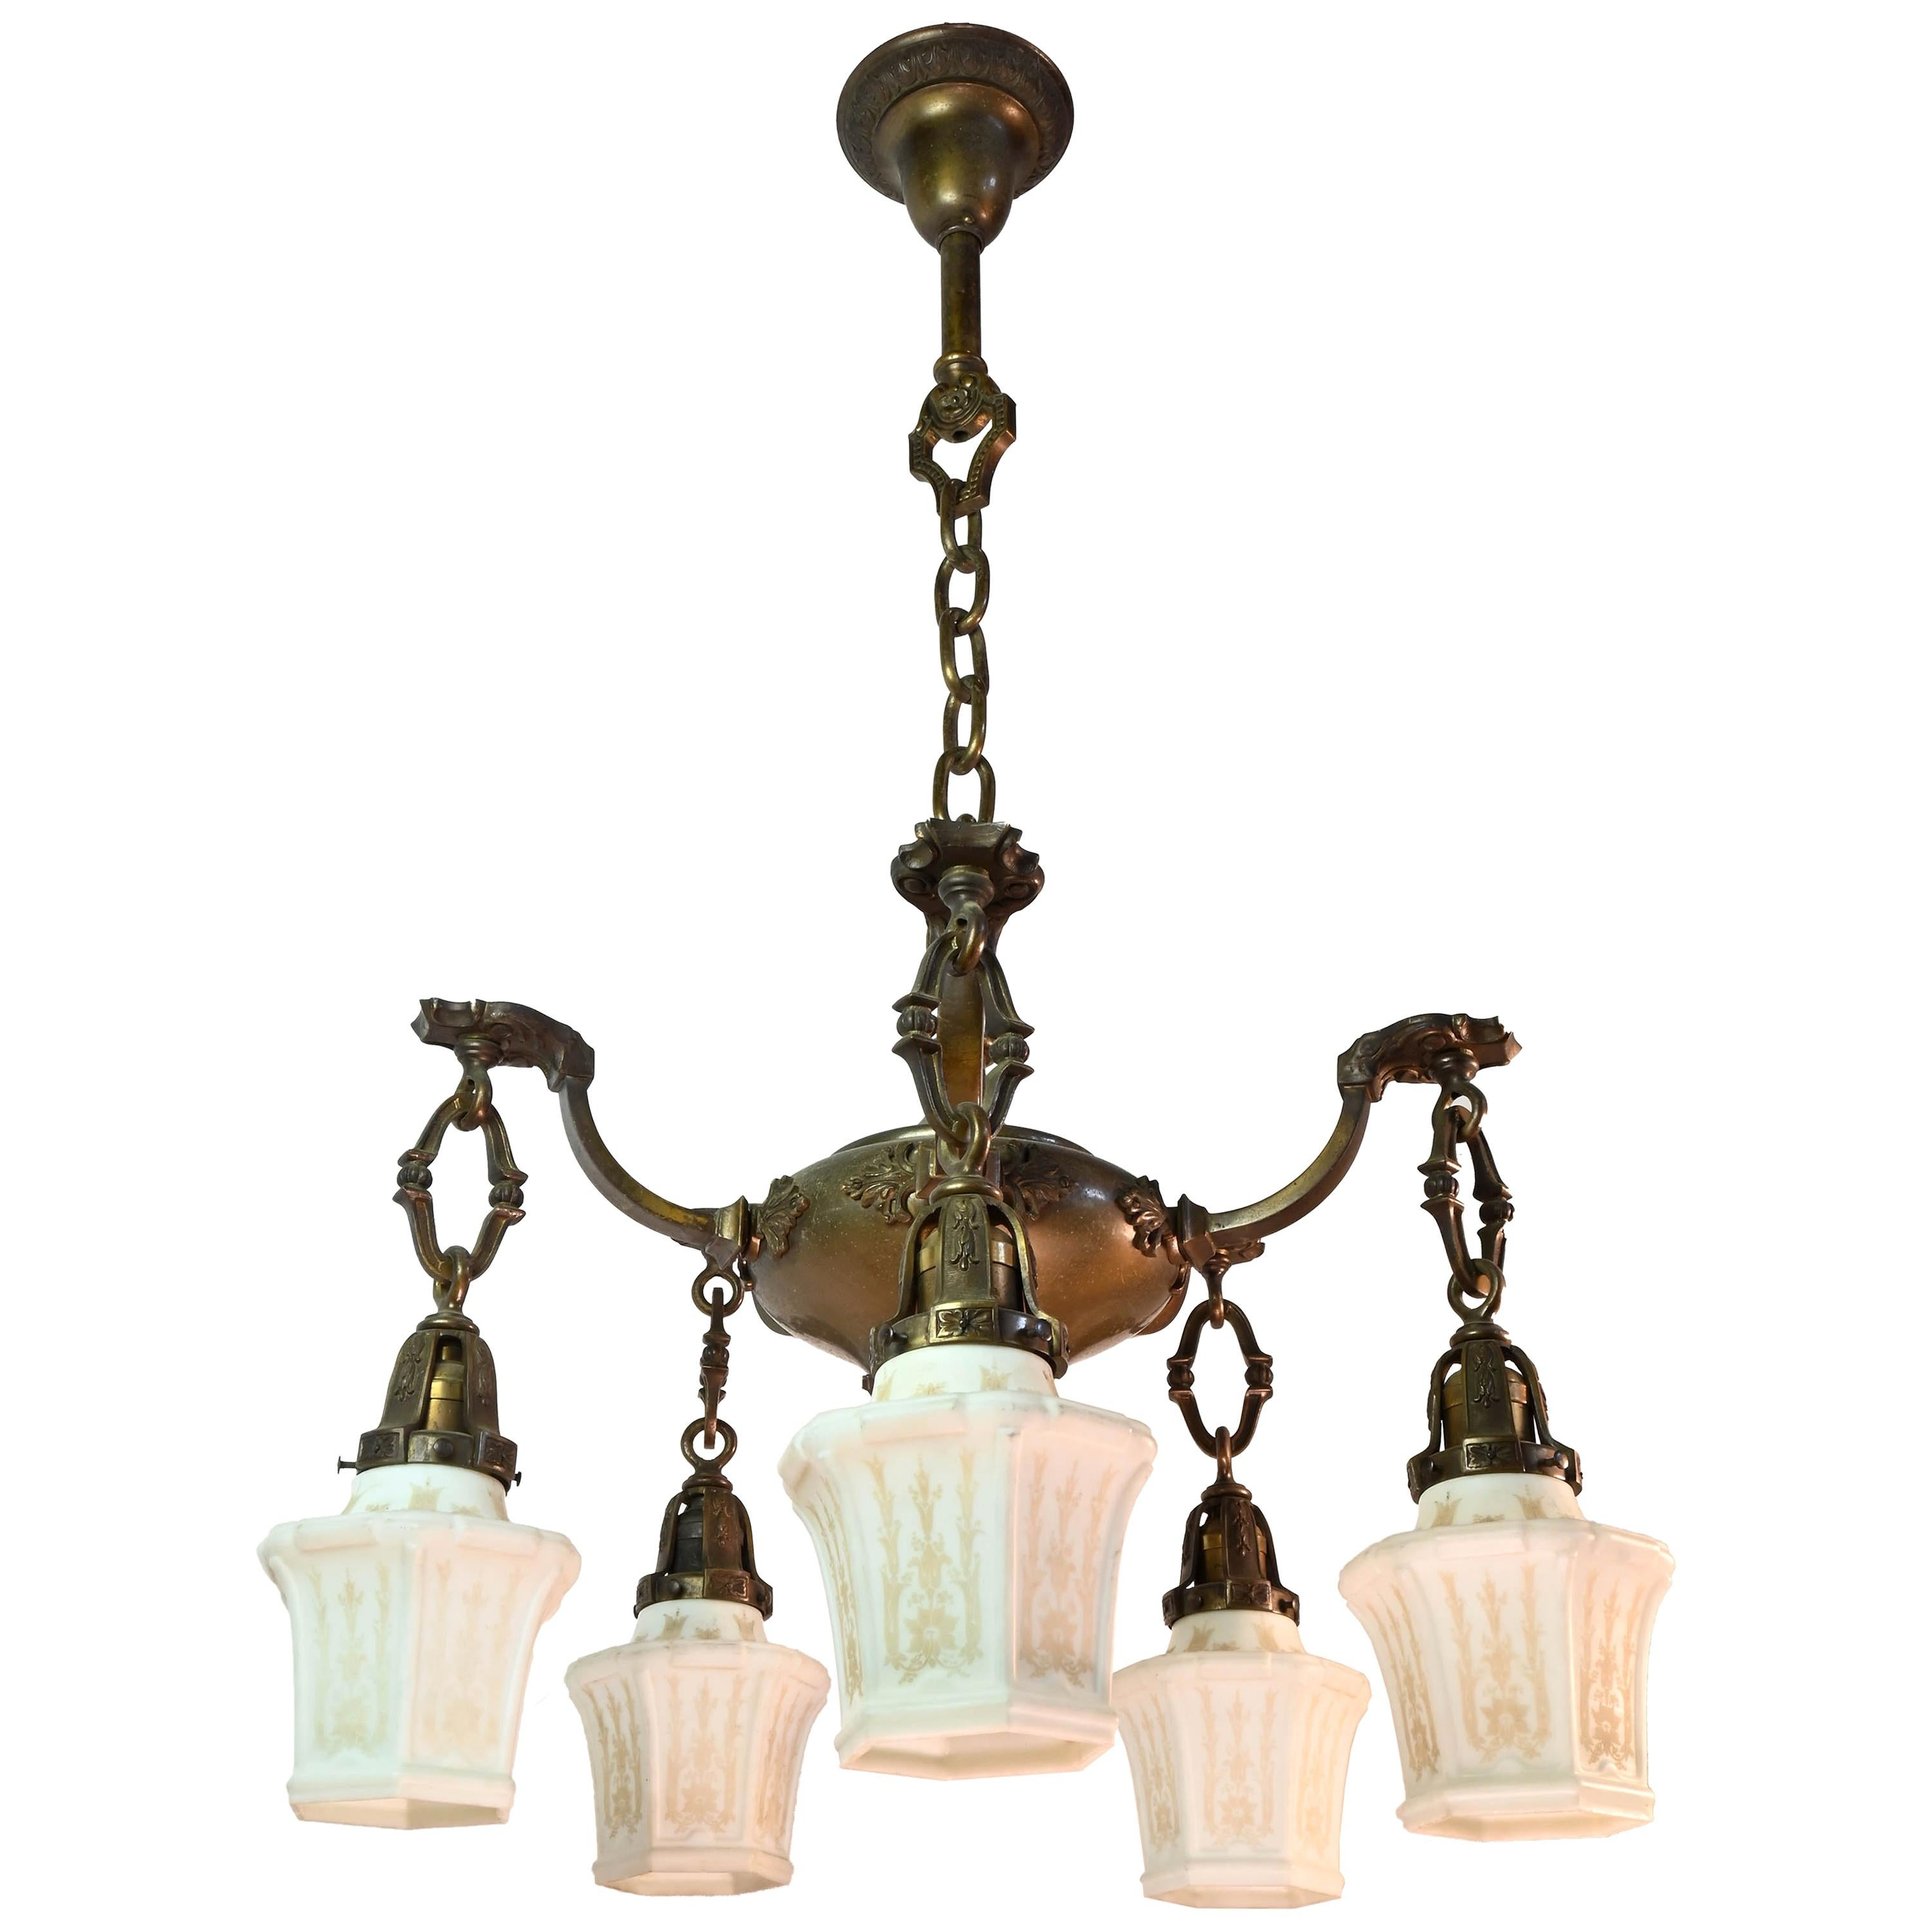 Five-Arm Cast Brass Chandelier with Original Etched Shades